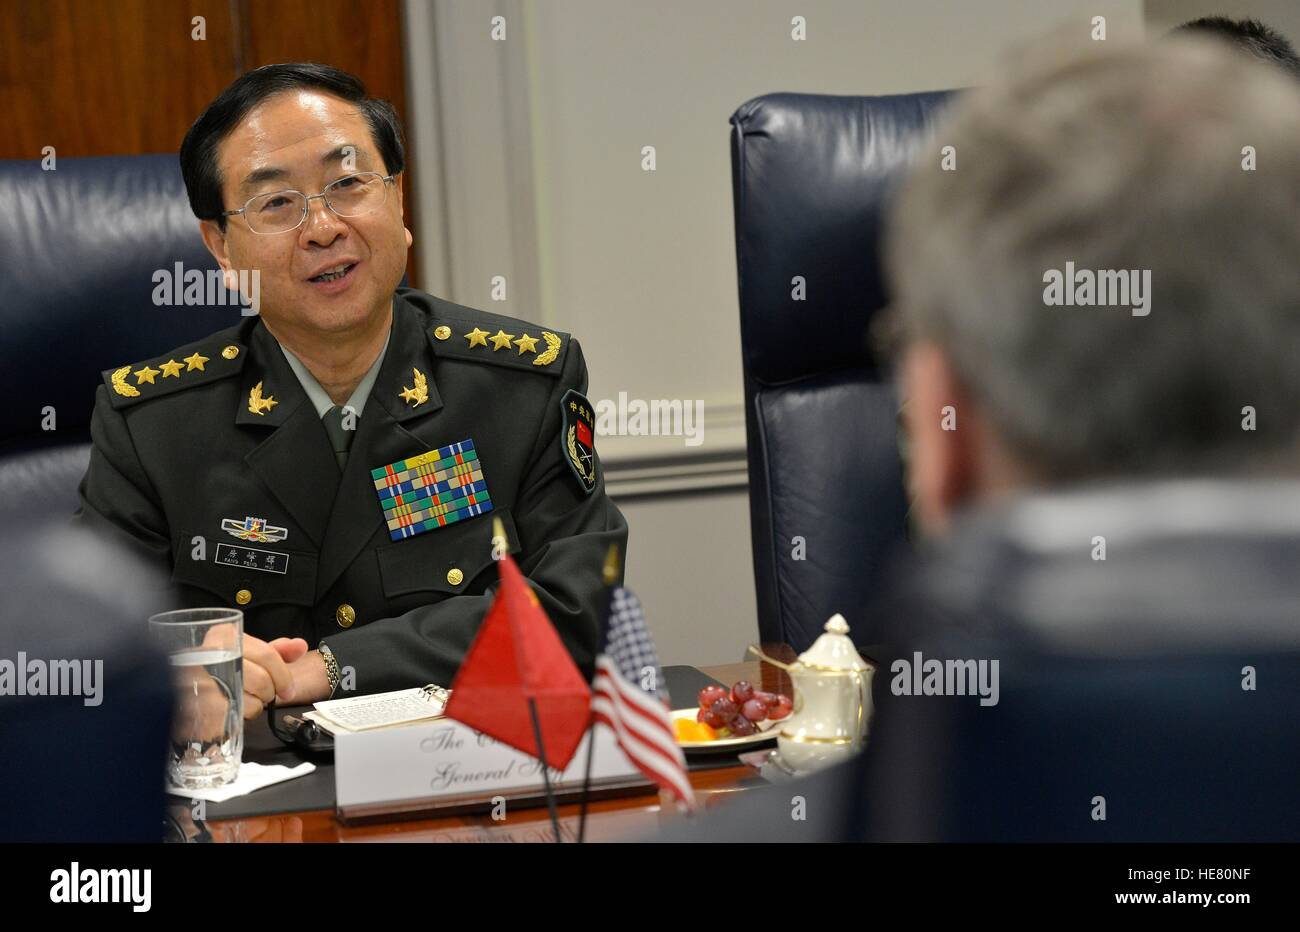 Chinese Chief of General Staff Fang Fengshui meets with U.S. Deputy Secretary of Defense Bob Work at the Pentagon - Stock Image